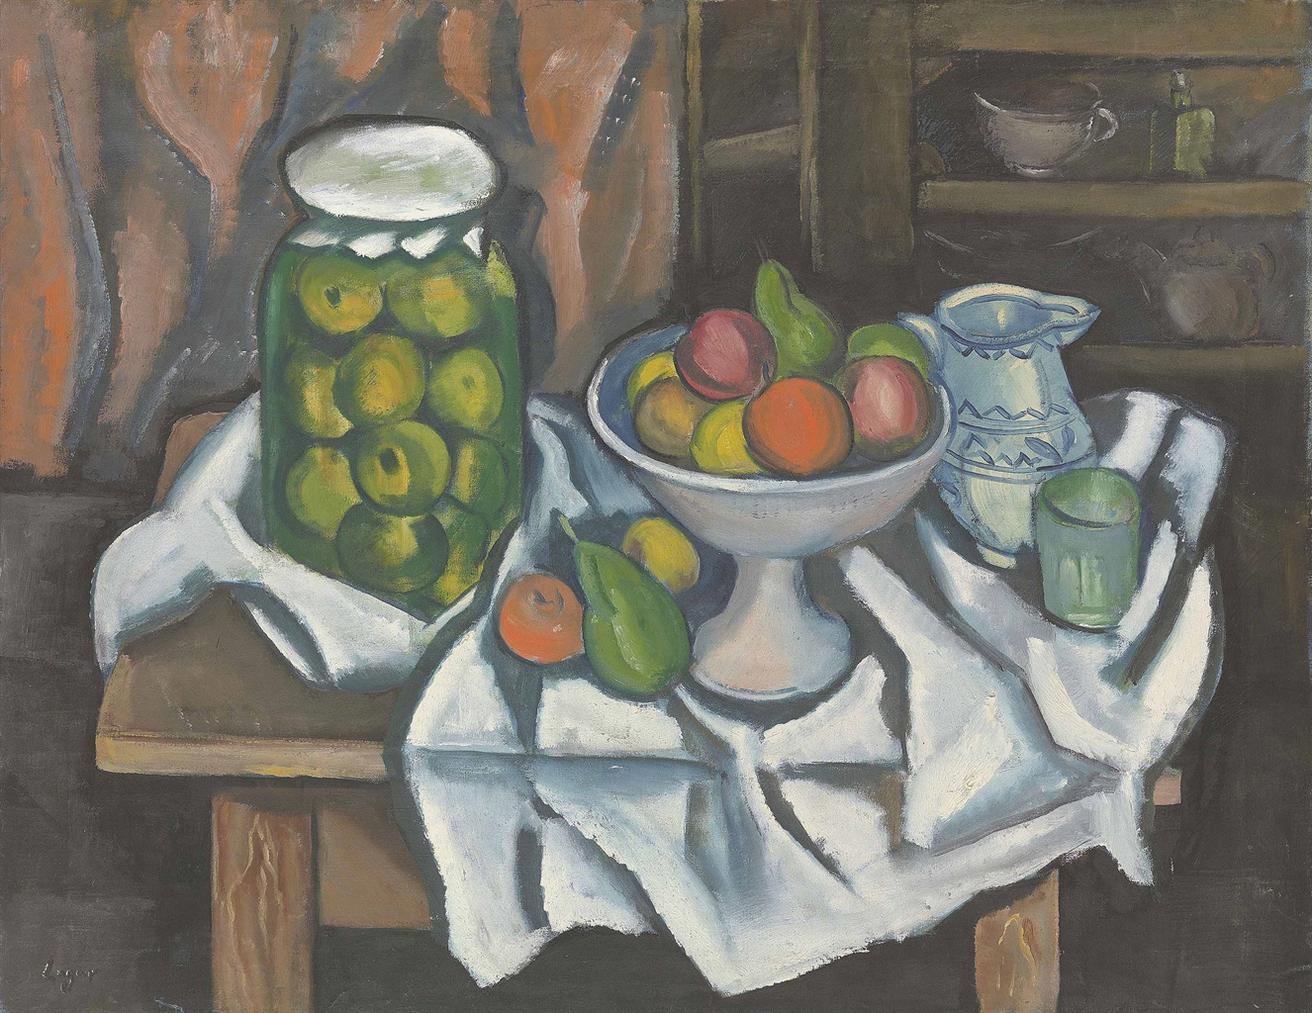 Celso Lagar-Fruits Sur Table-